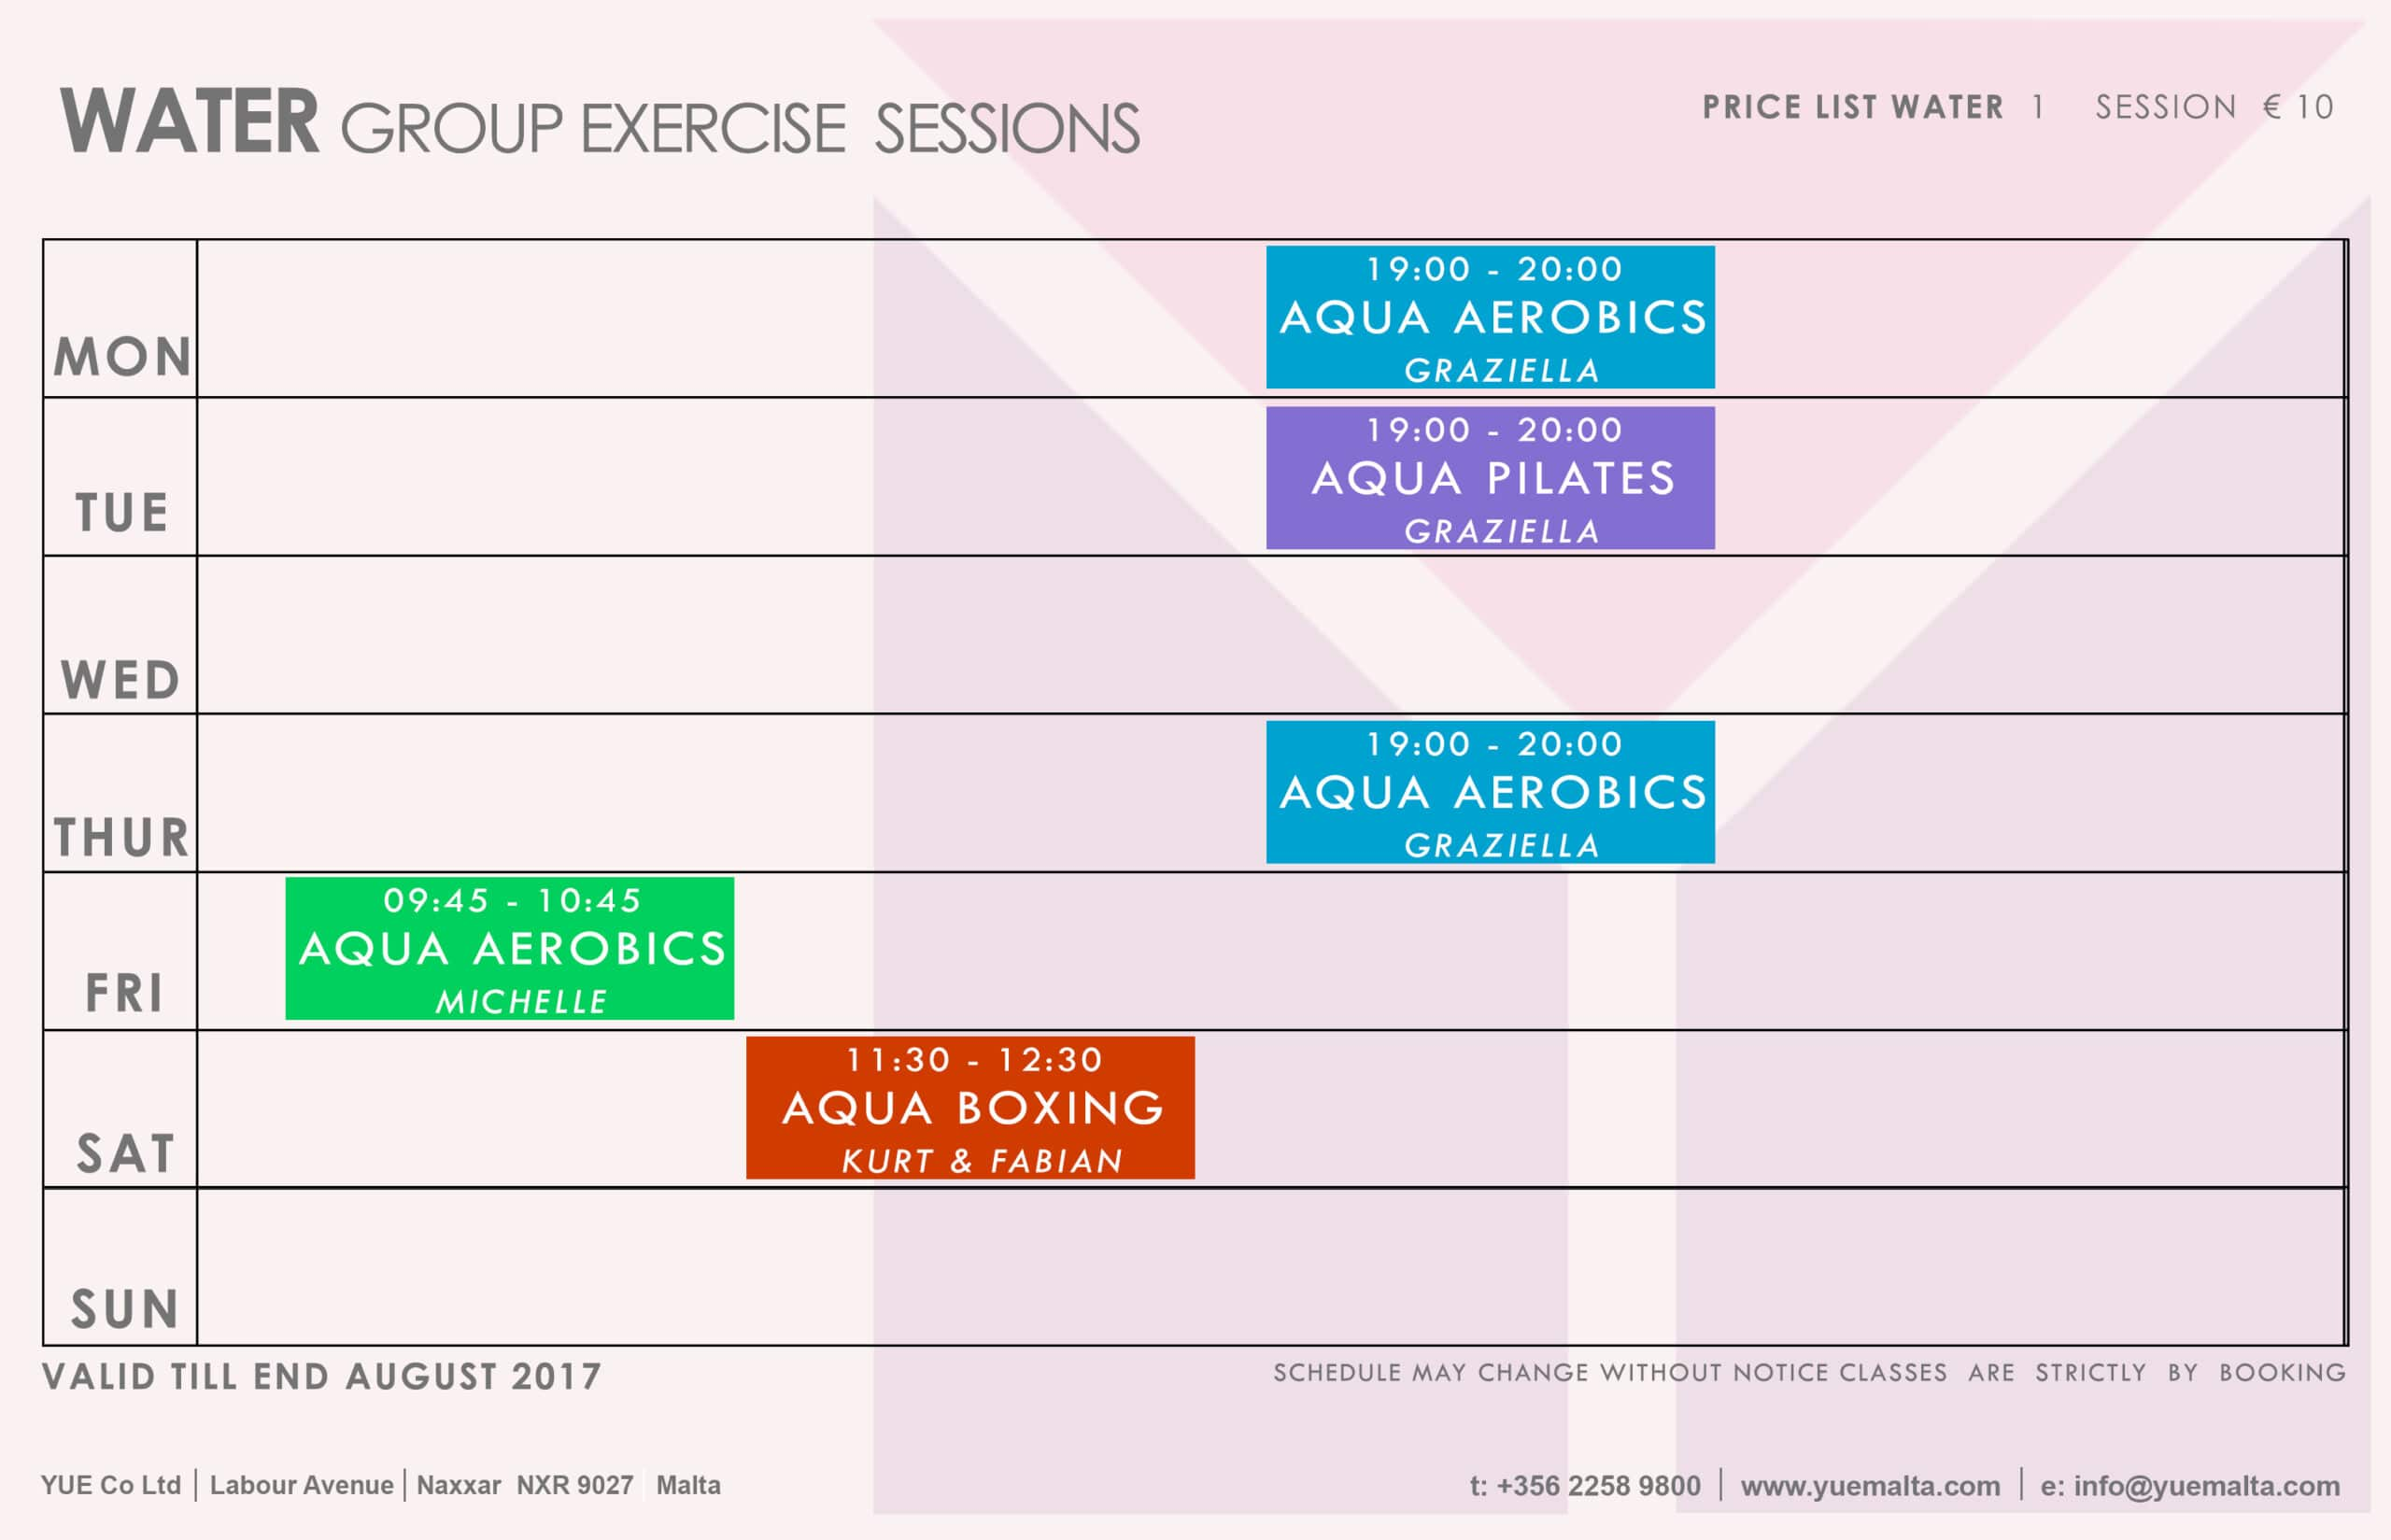 GX Schedule - TILL AUGUST 17 COLOUR TABLE - WATER GROUP 31-05